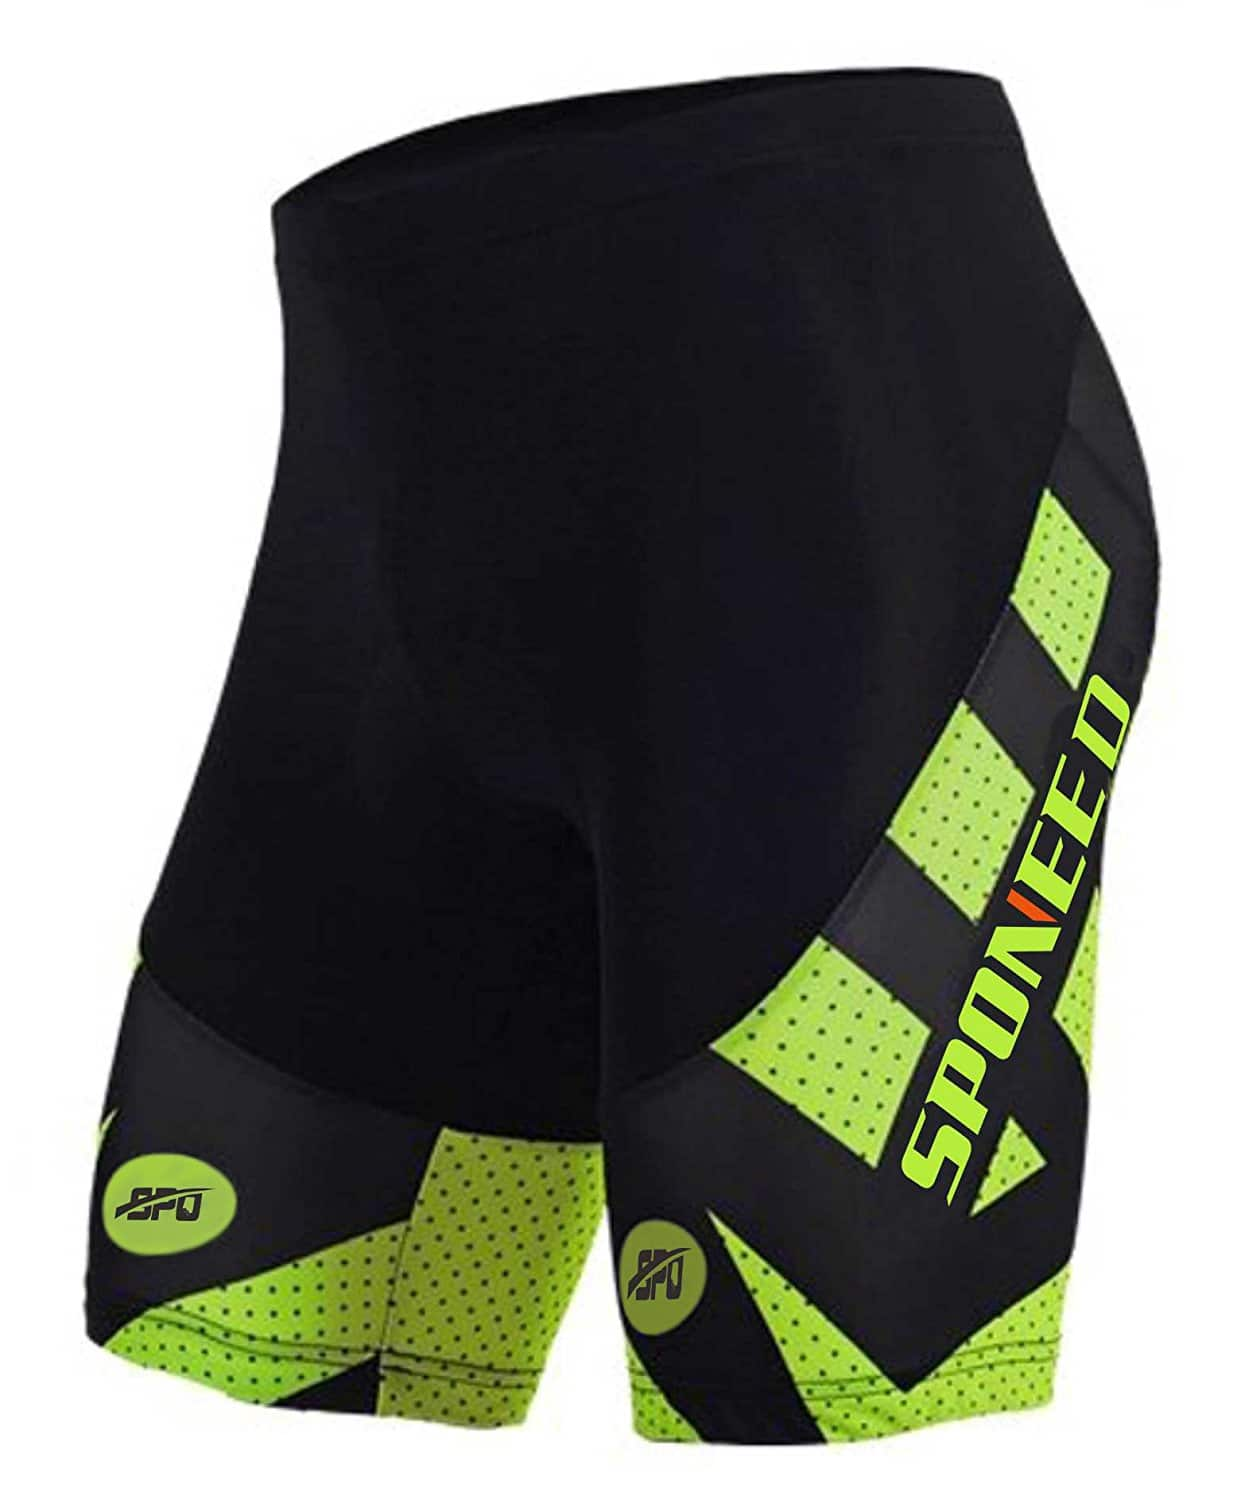 Men's Cycling Shorts Padded Bicycle Riding Pants  from $14.79-$20.71 &Free shipping with prime